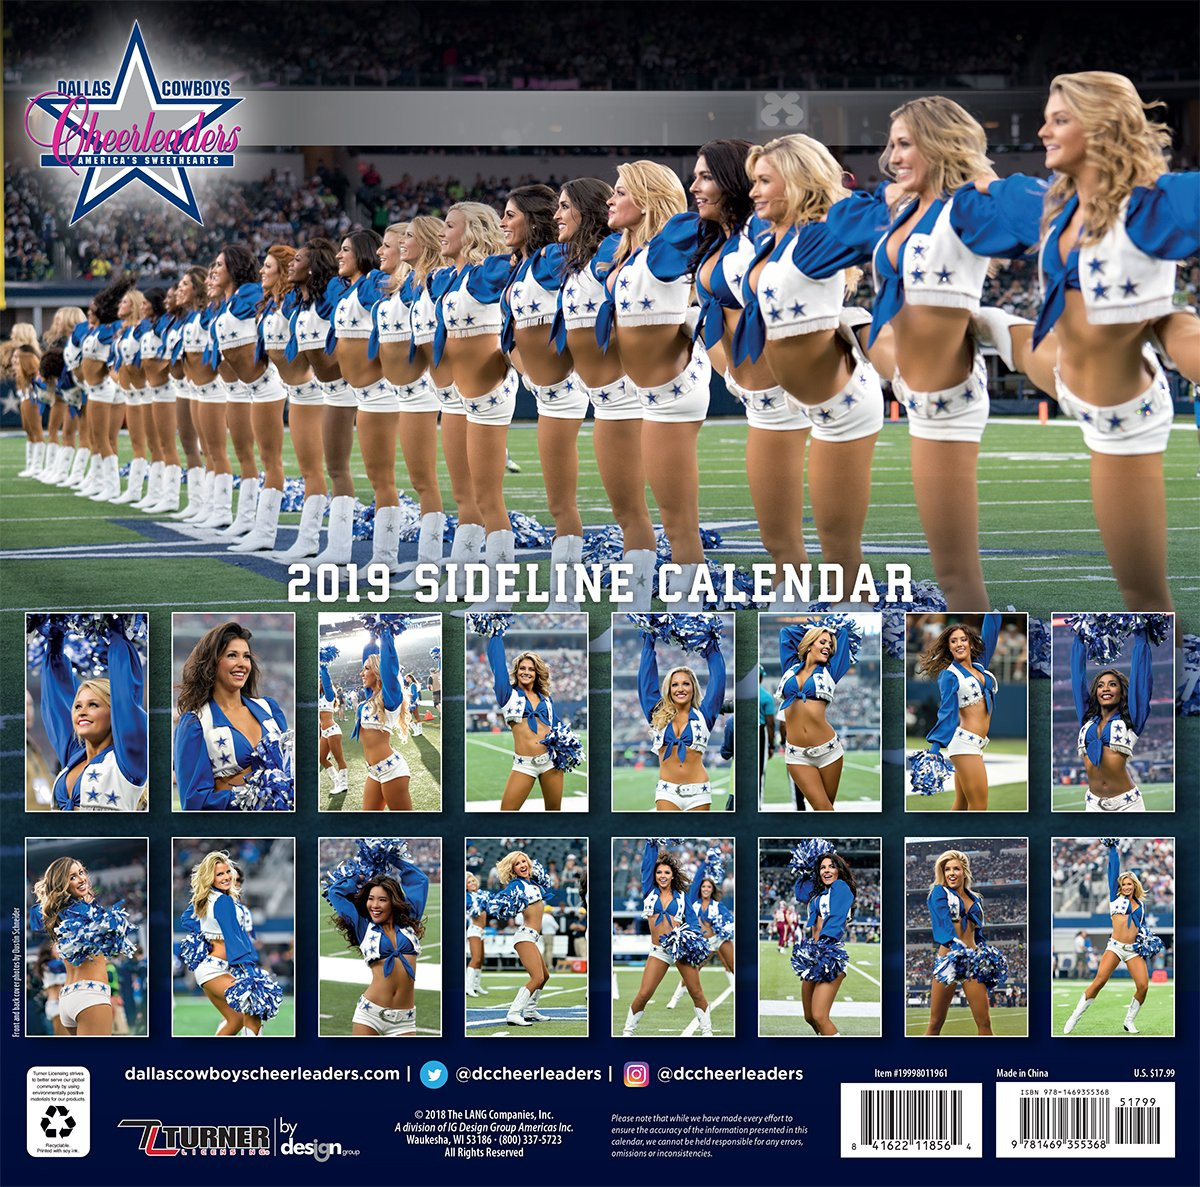 56dd0ea5dc91 espátula Licensing Dallas Cowboys Cheerleader 2019 12 x 12 16 meses  calendario (19998011961)